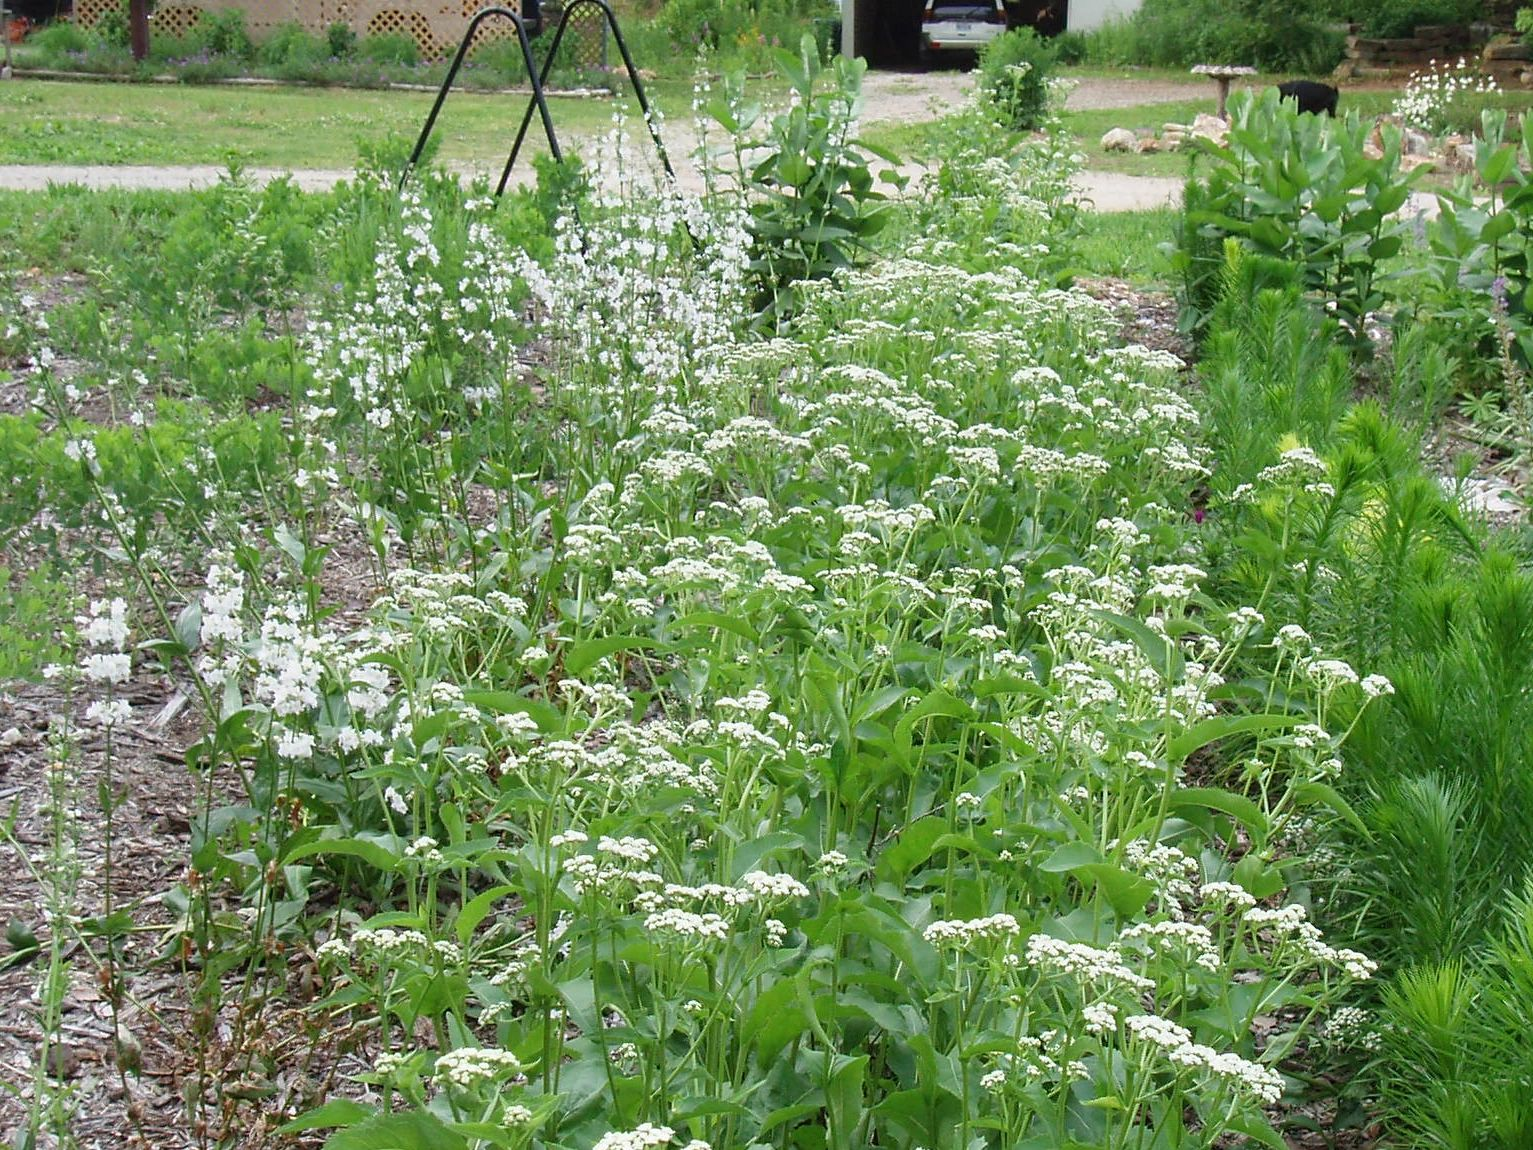 "{""blocks"":[{""key"":""fcnpu"",""text"":""Parthenium integrifolium Wild Quinine - potted plants email john@easywildflowers.com "",""type"":""unstyled"",""depth"":0,""inlineStyleRanges"":[],""entityRanges"":[],""data"":{}}],""entityMap"":{}}"